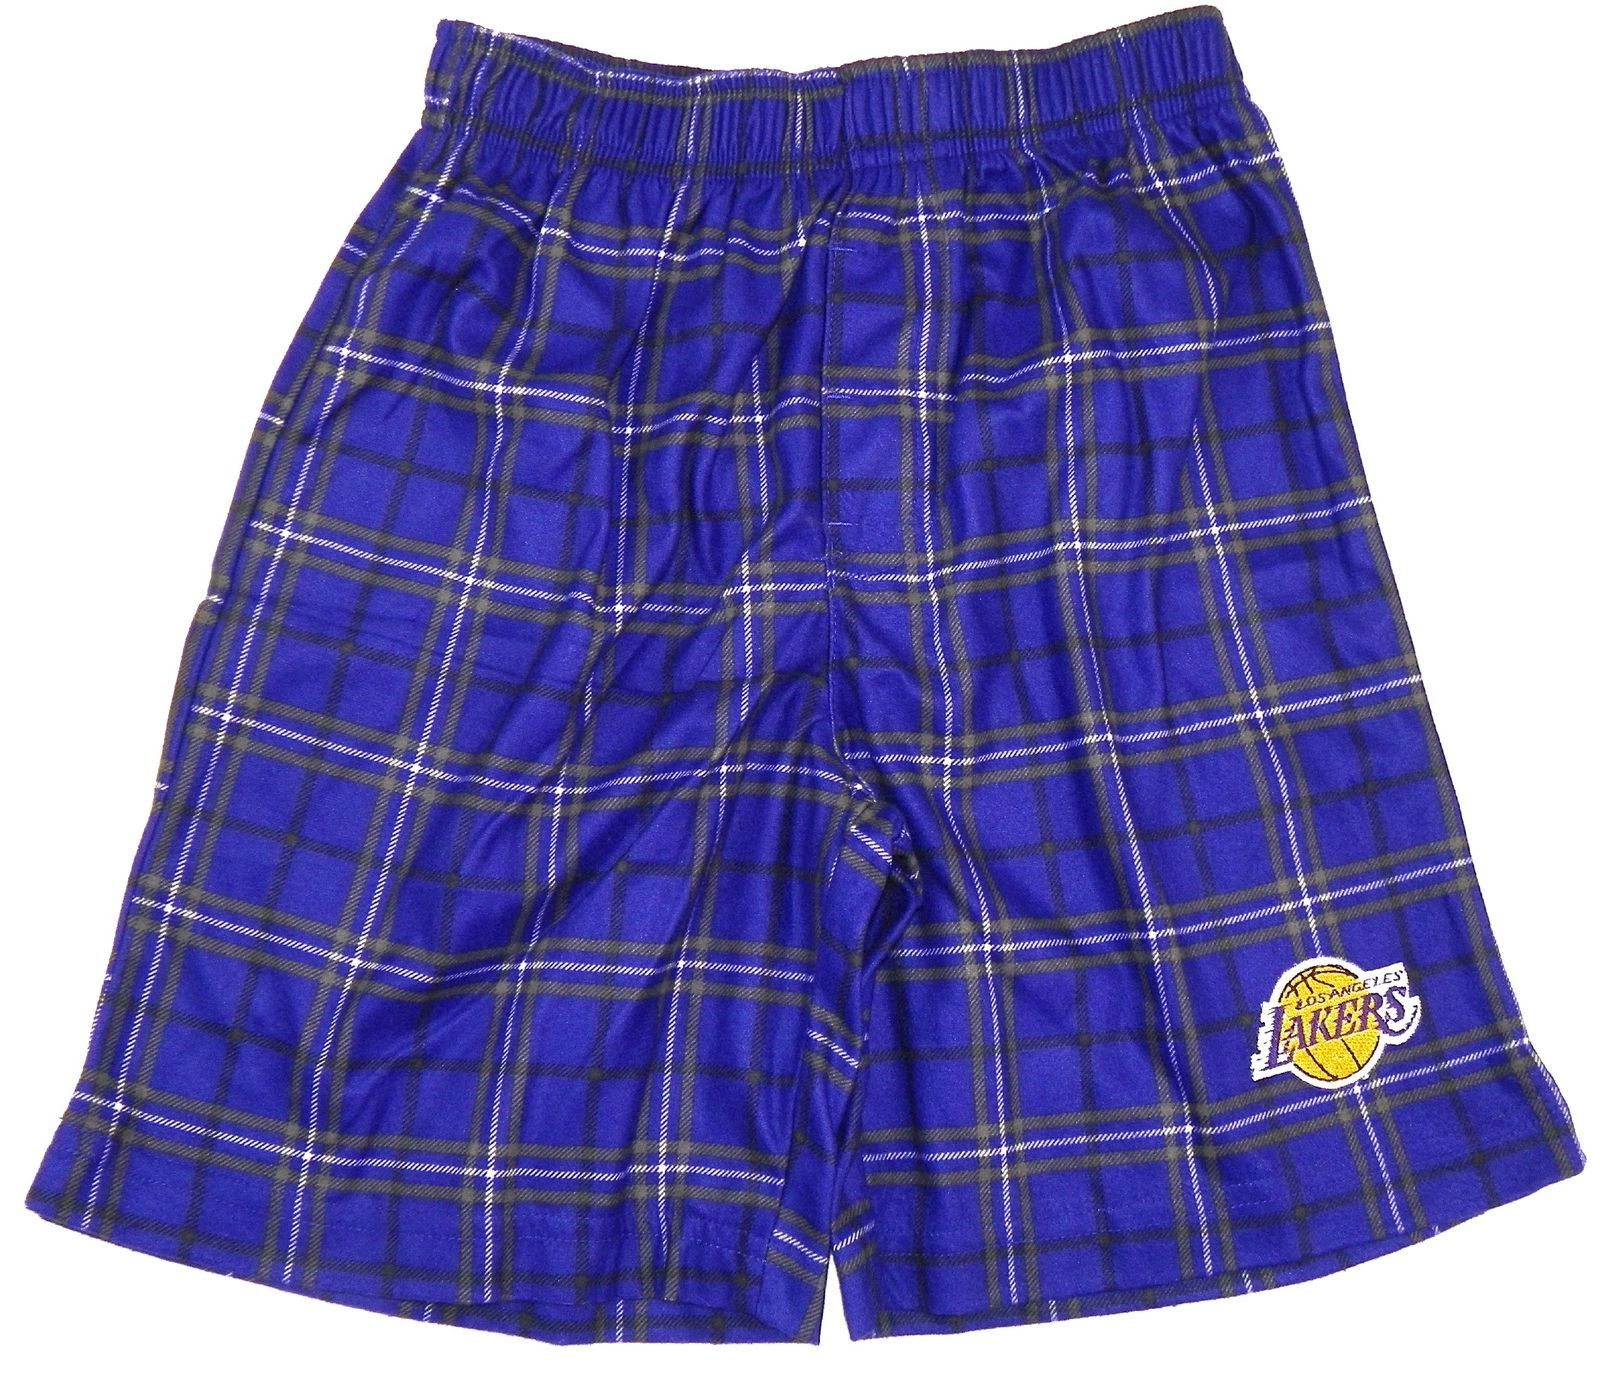 Toddler Boy's Los Angeles Lakers Pajama Shorts Sleep Lounge NBA Basketball